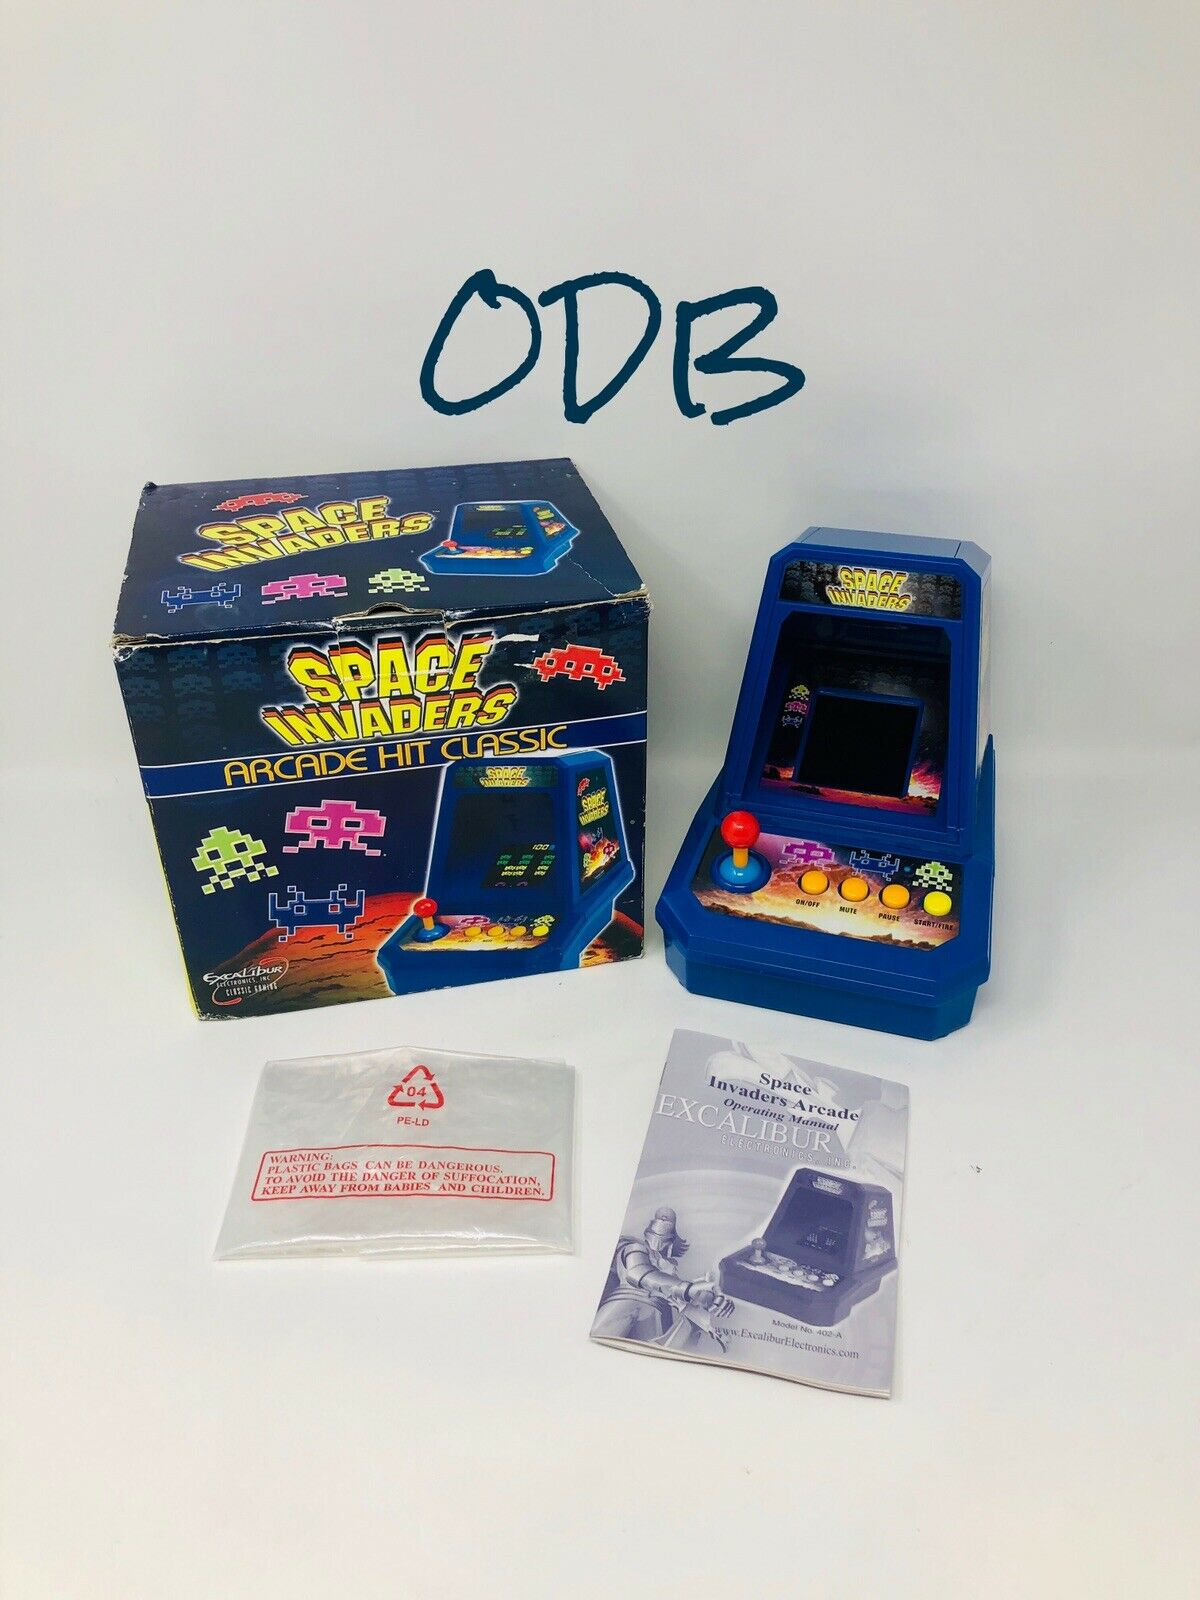 Excalibur Space Invaders () Box Inserts Manual